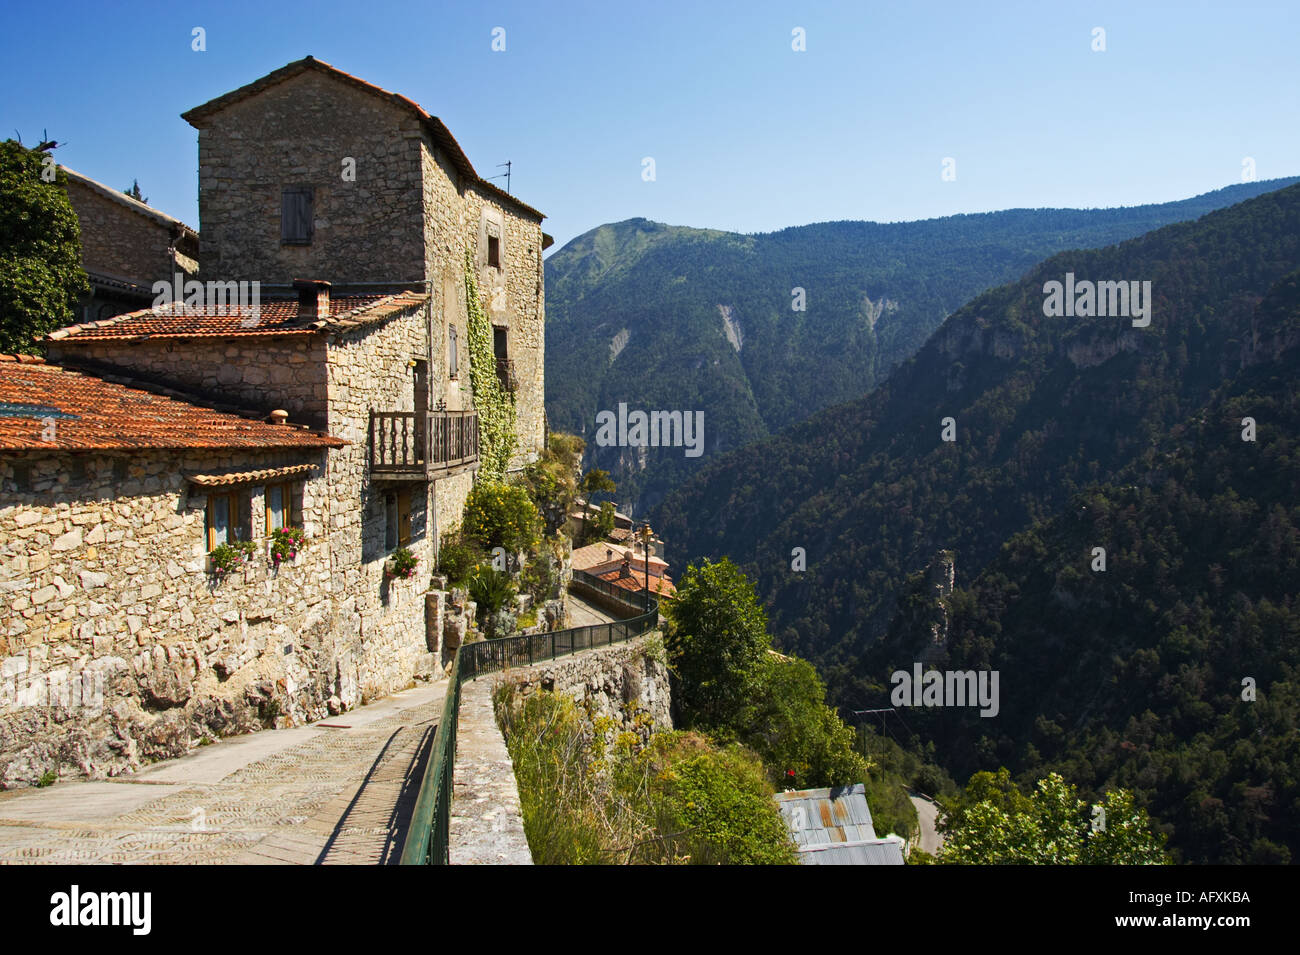 Remote hilltop village of Bairols, Alpes Maritimes, France - Stock Image